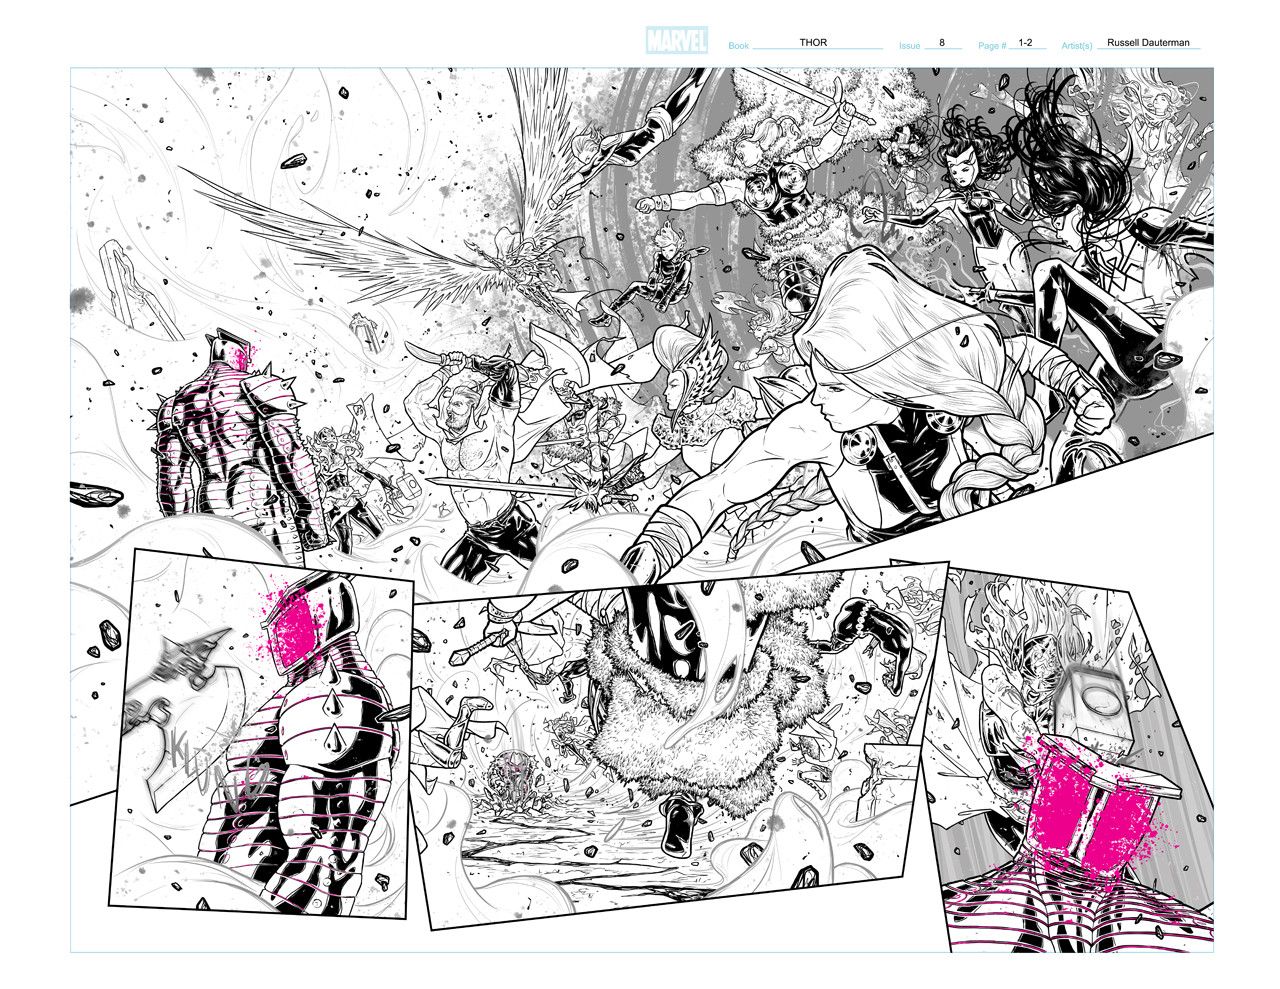 Thor #8 Page 1 and 2 Inks